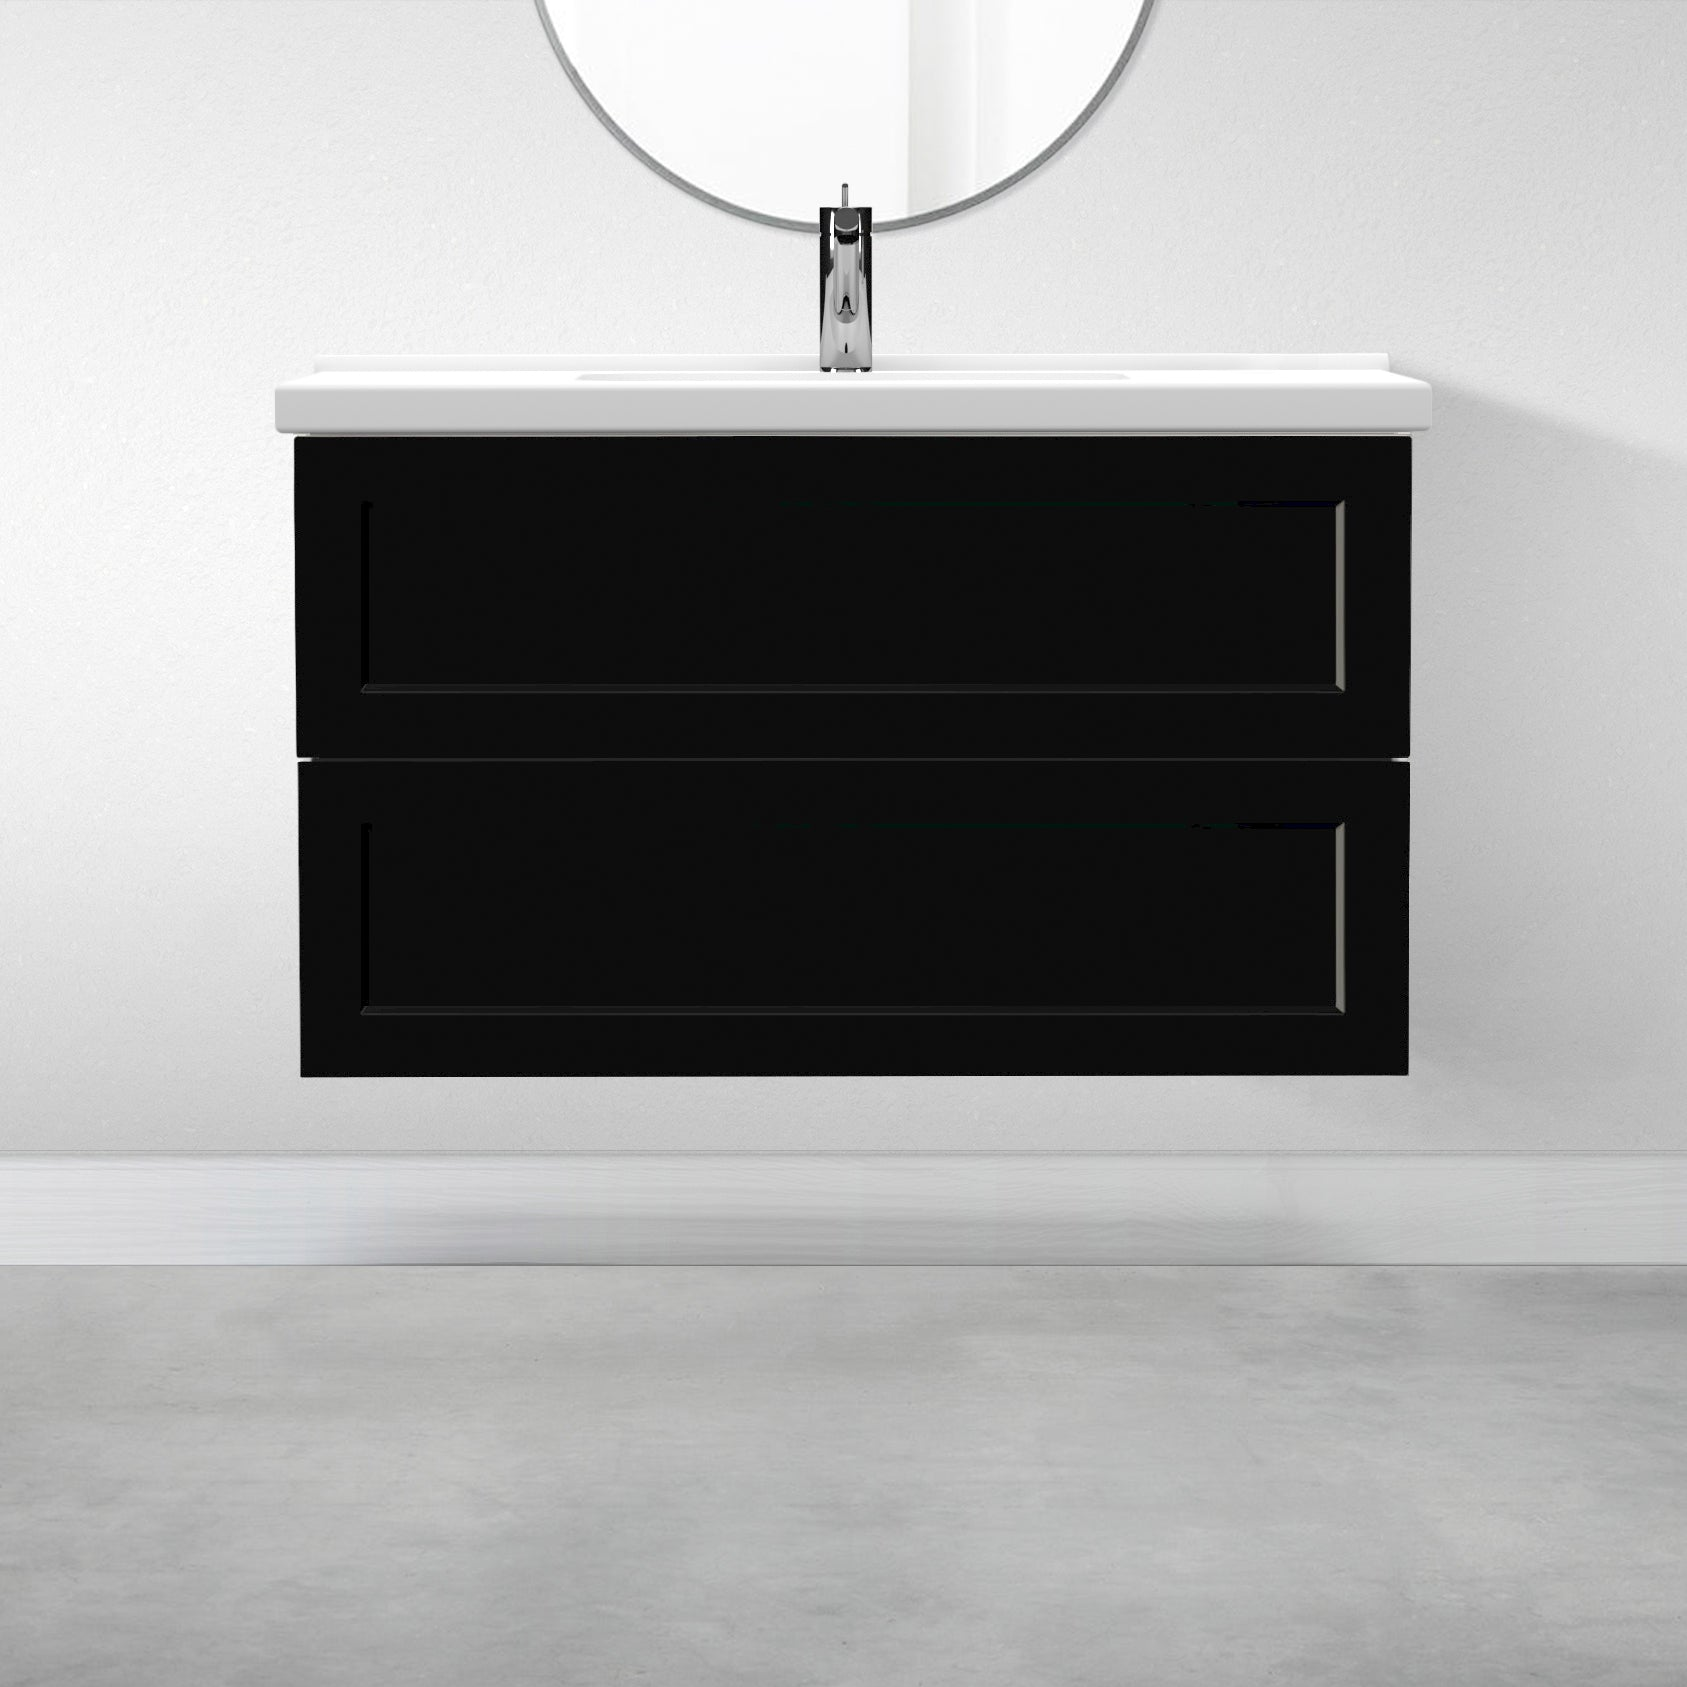 "2 Drawers - 39 3/8"" for Godmorgon Supermatte Shaker / Black"